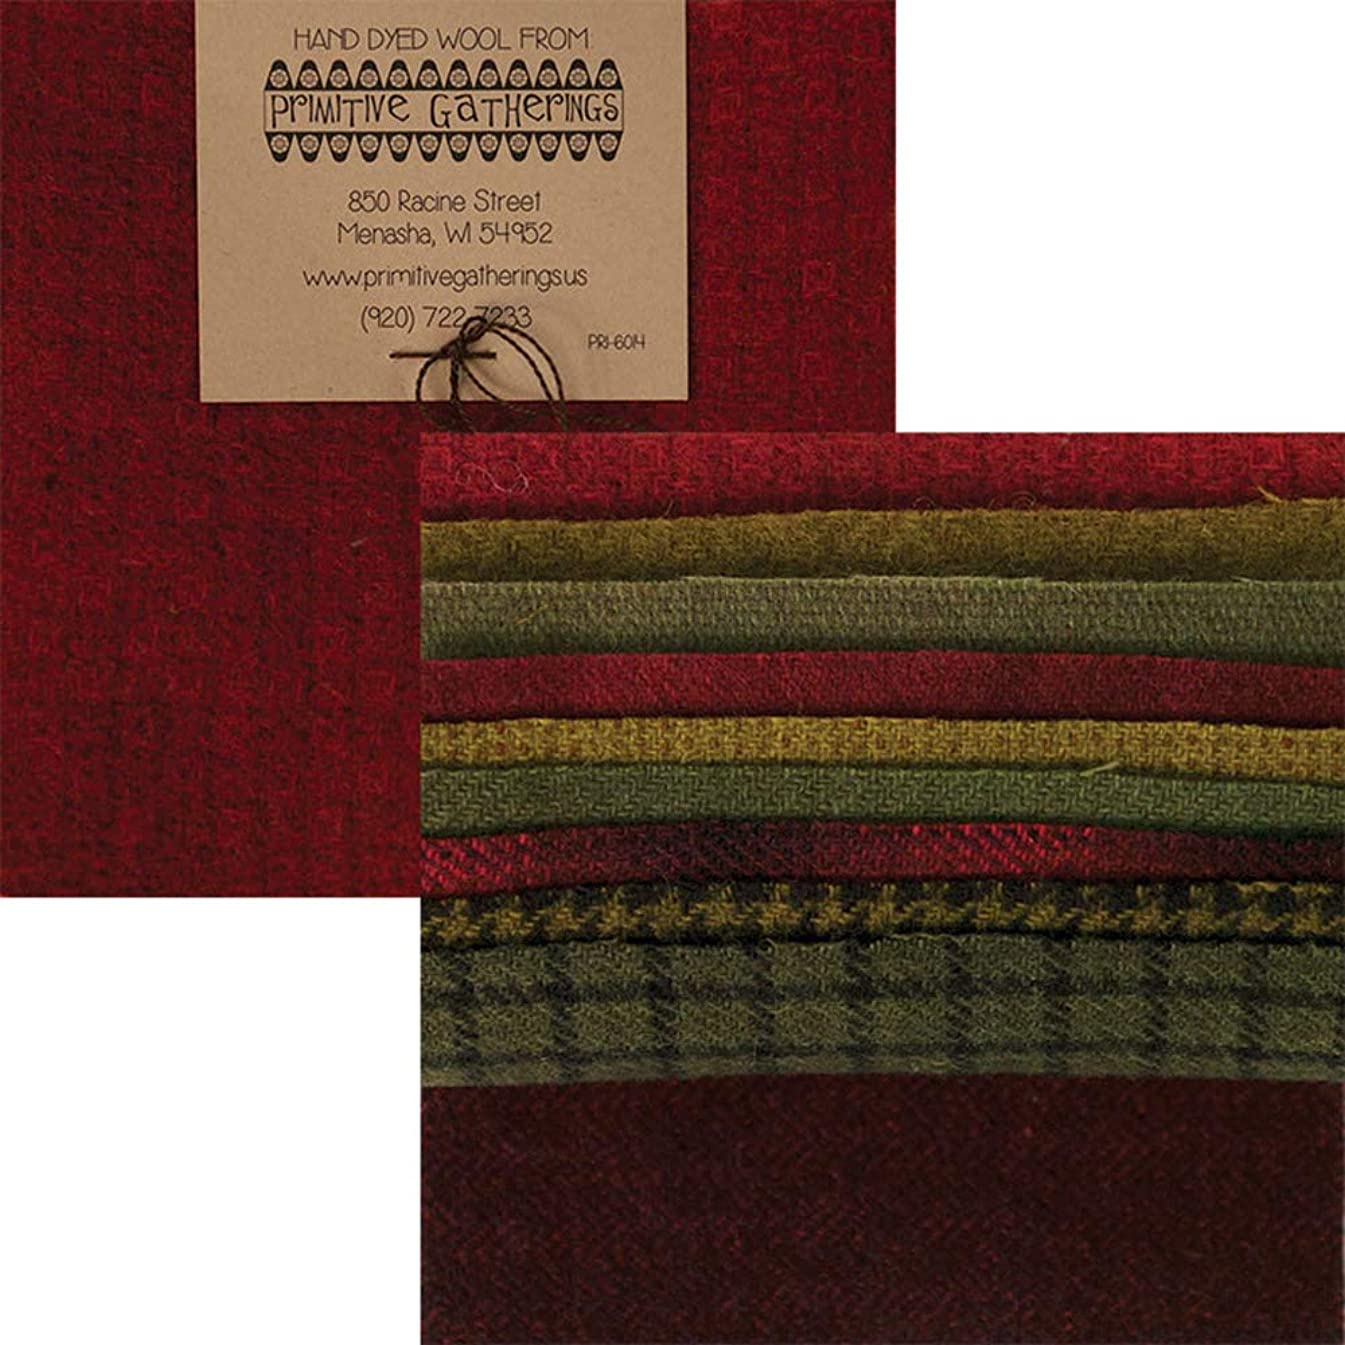 Primitive Gatherings Hand Dyed Wool Holiday Charm Pack 10 5-inch Squares Moda Fabrics PRI 6014